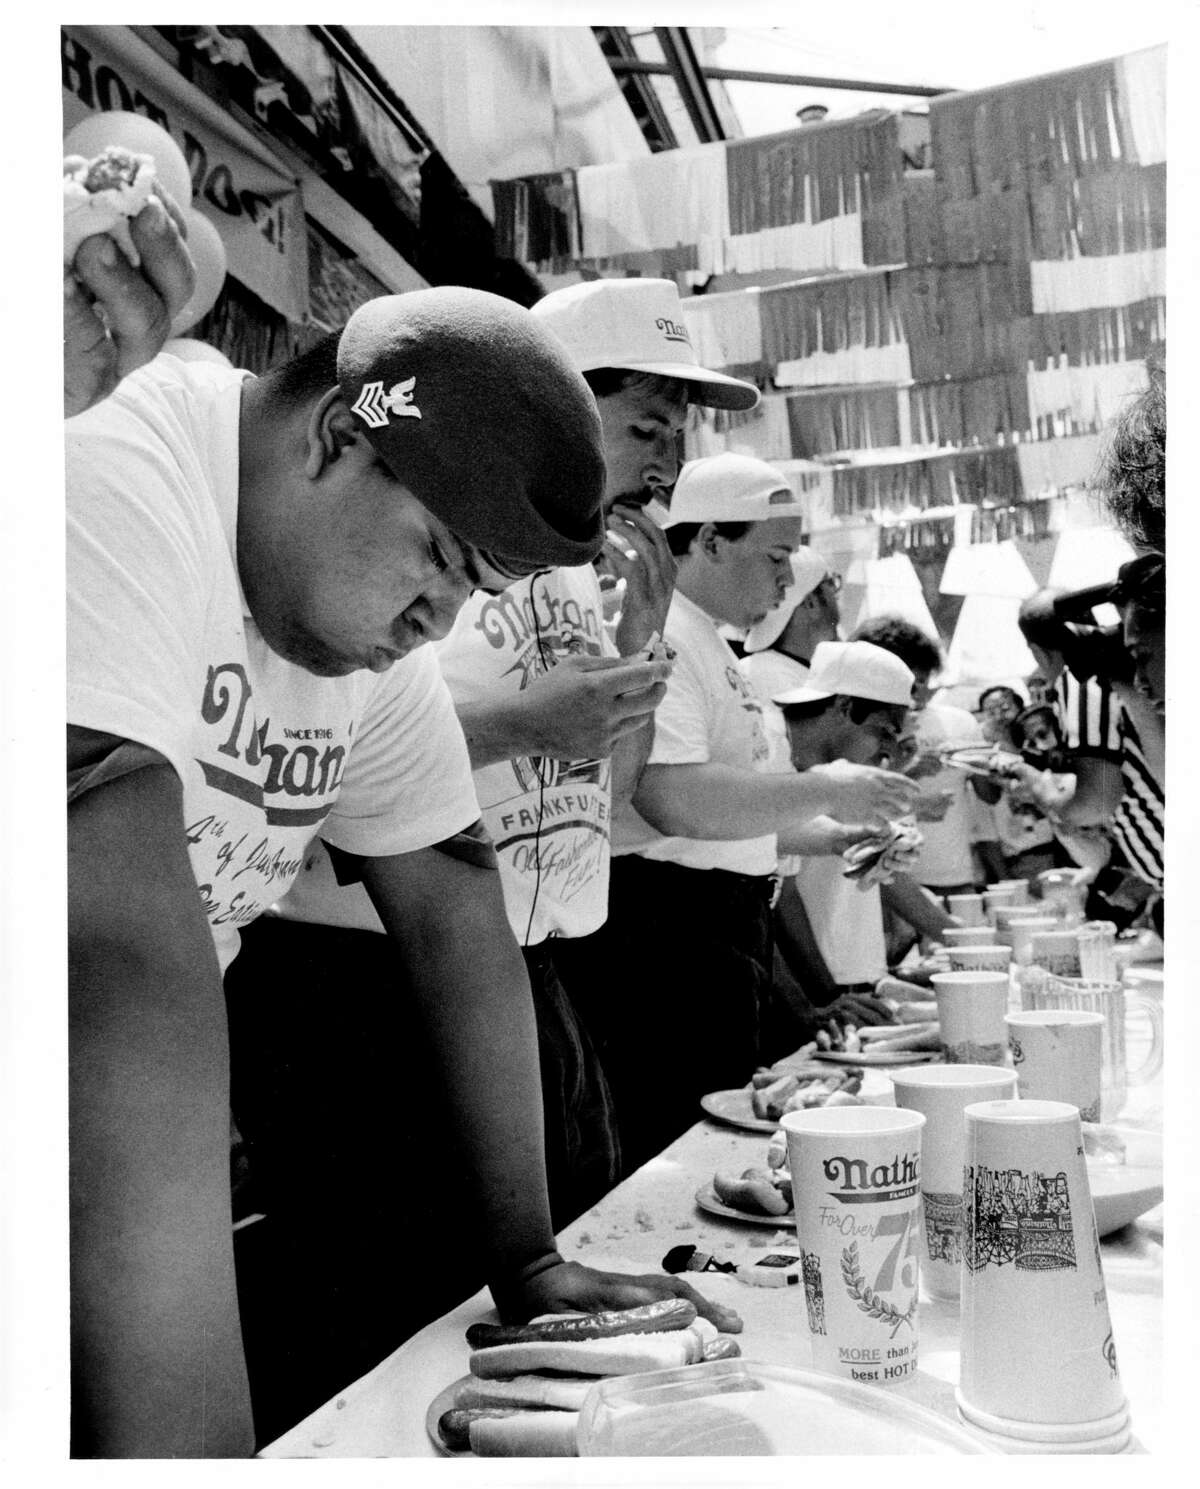 Hot dog aficionados chow down at the Nathan's July 4th hot dog eating contest in Coney Island on July 4, 1995. The annual contest has been around for decades, with the first recorded contest taking place in 1972.